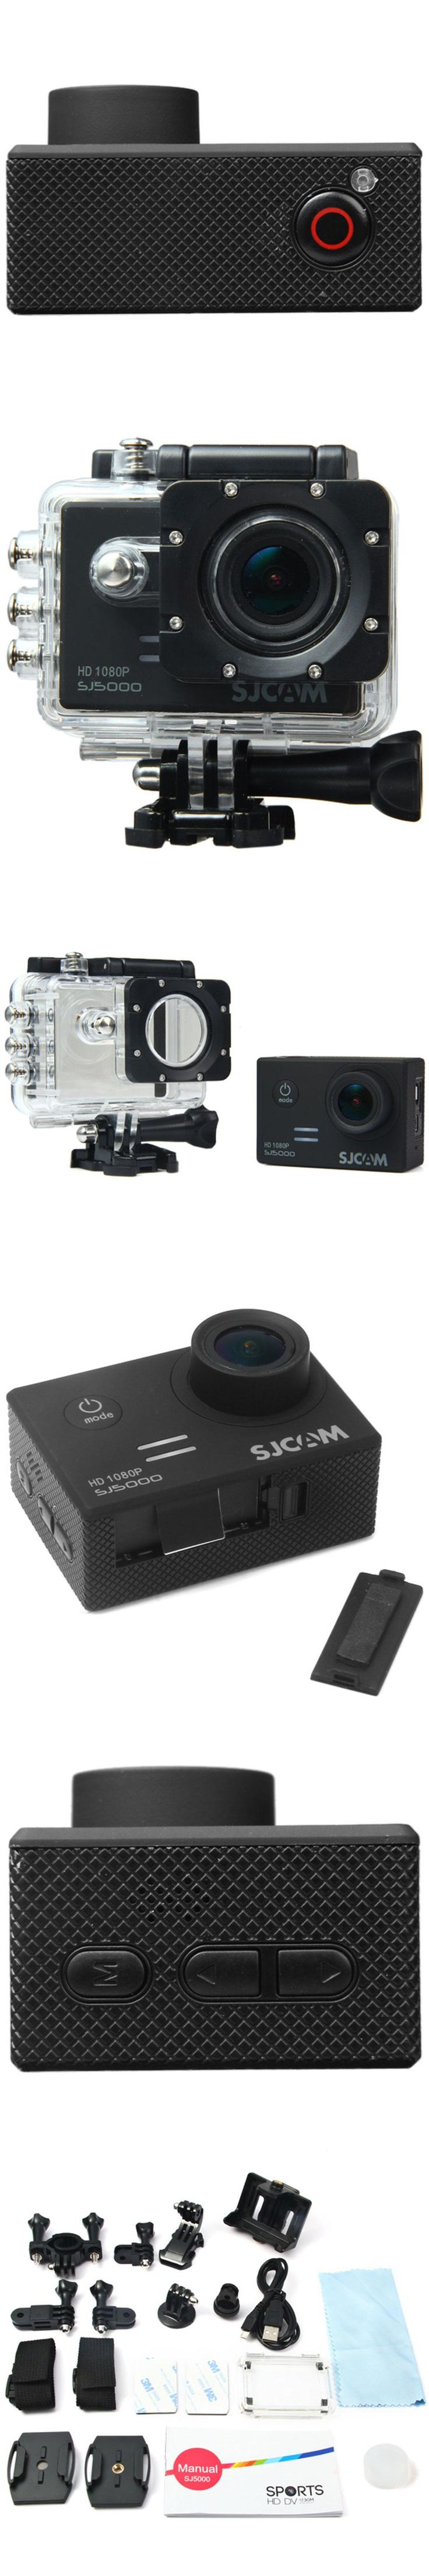 Original SJCAM SJ5000 Series Action Video Camera SJ5000X 4K Elite /  SJ5000 Basic Mini Outdoor Sport Camcorder DV